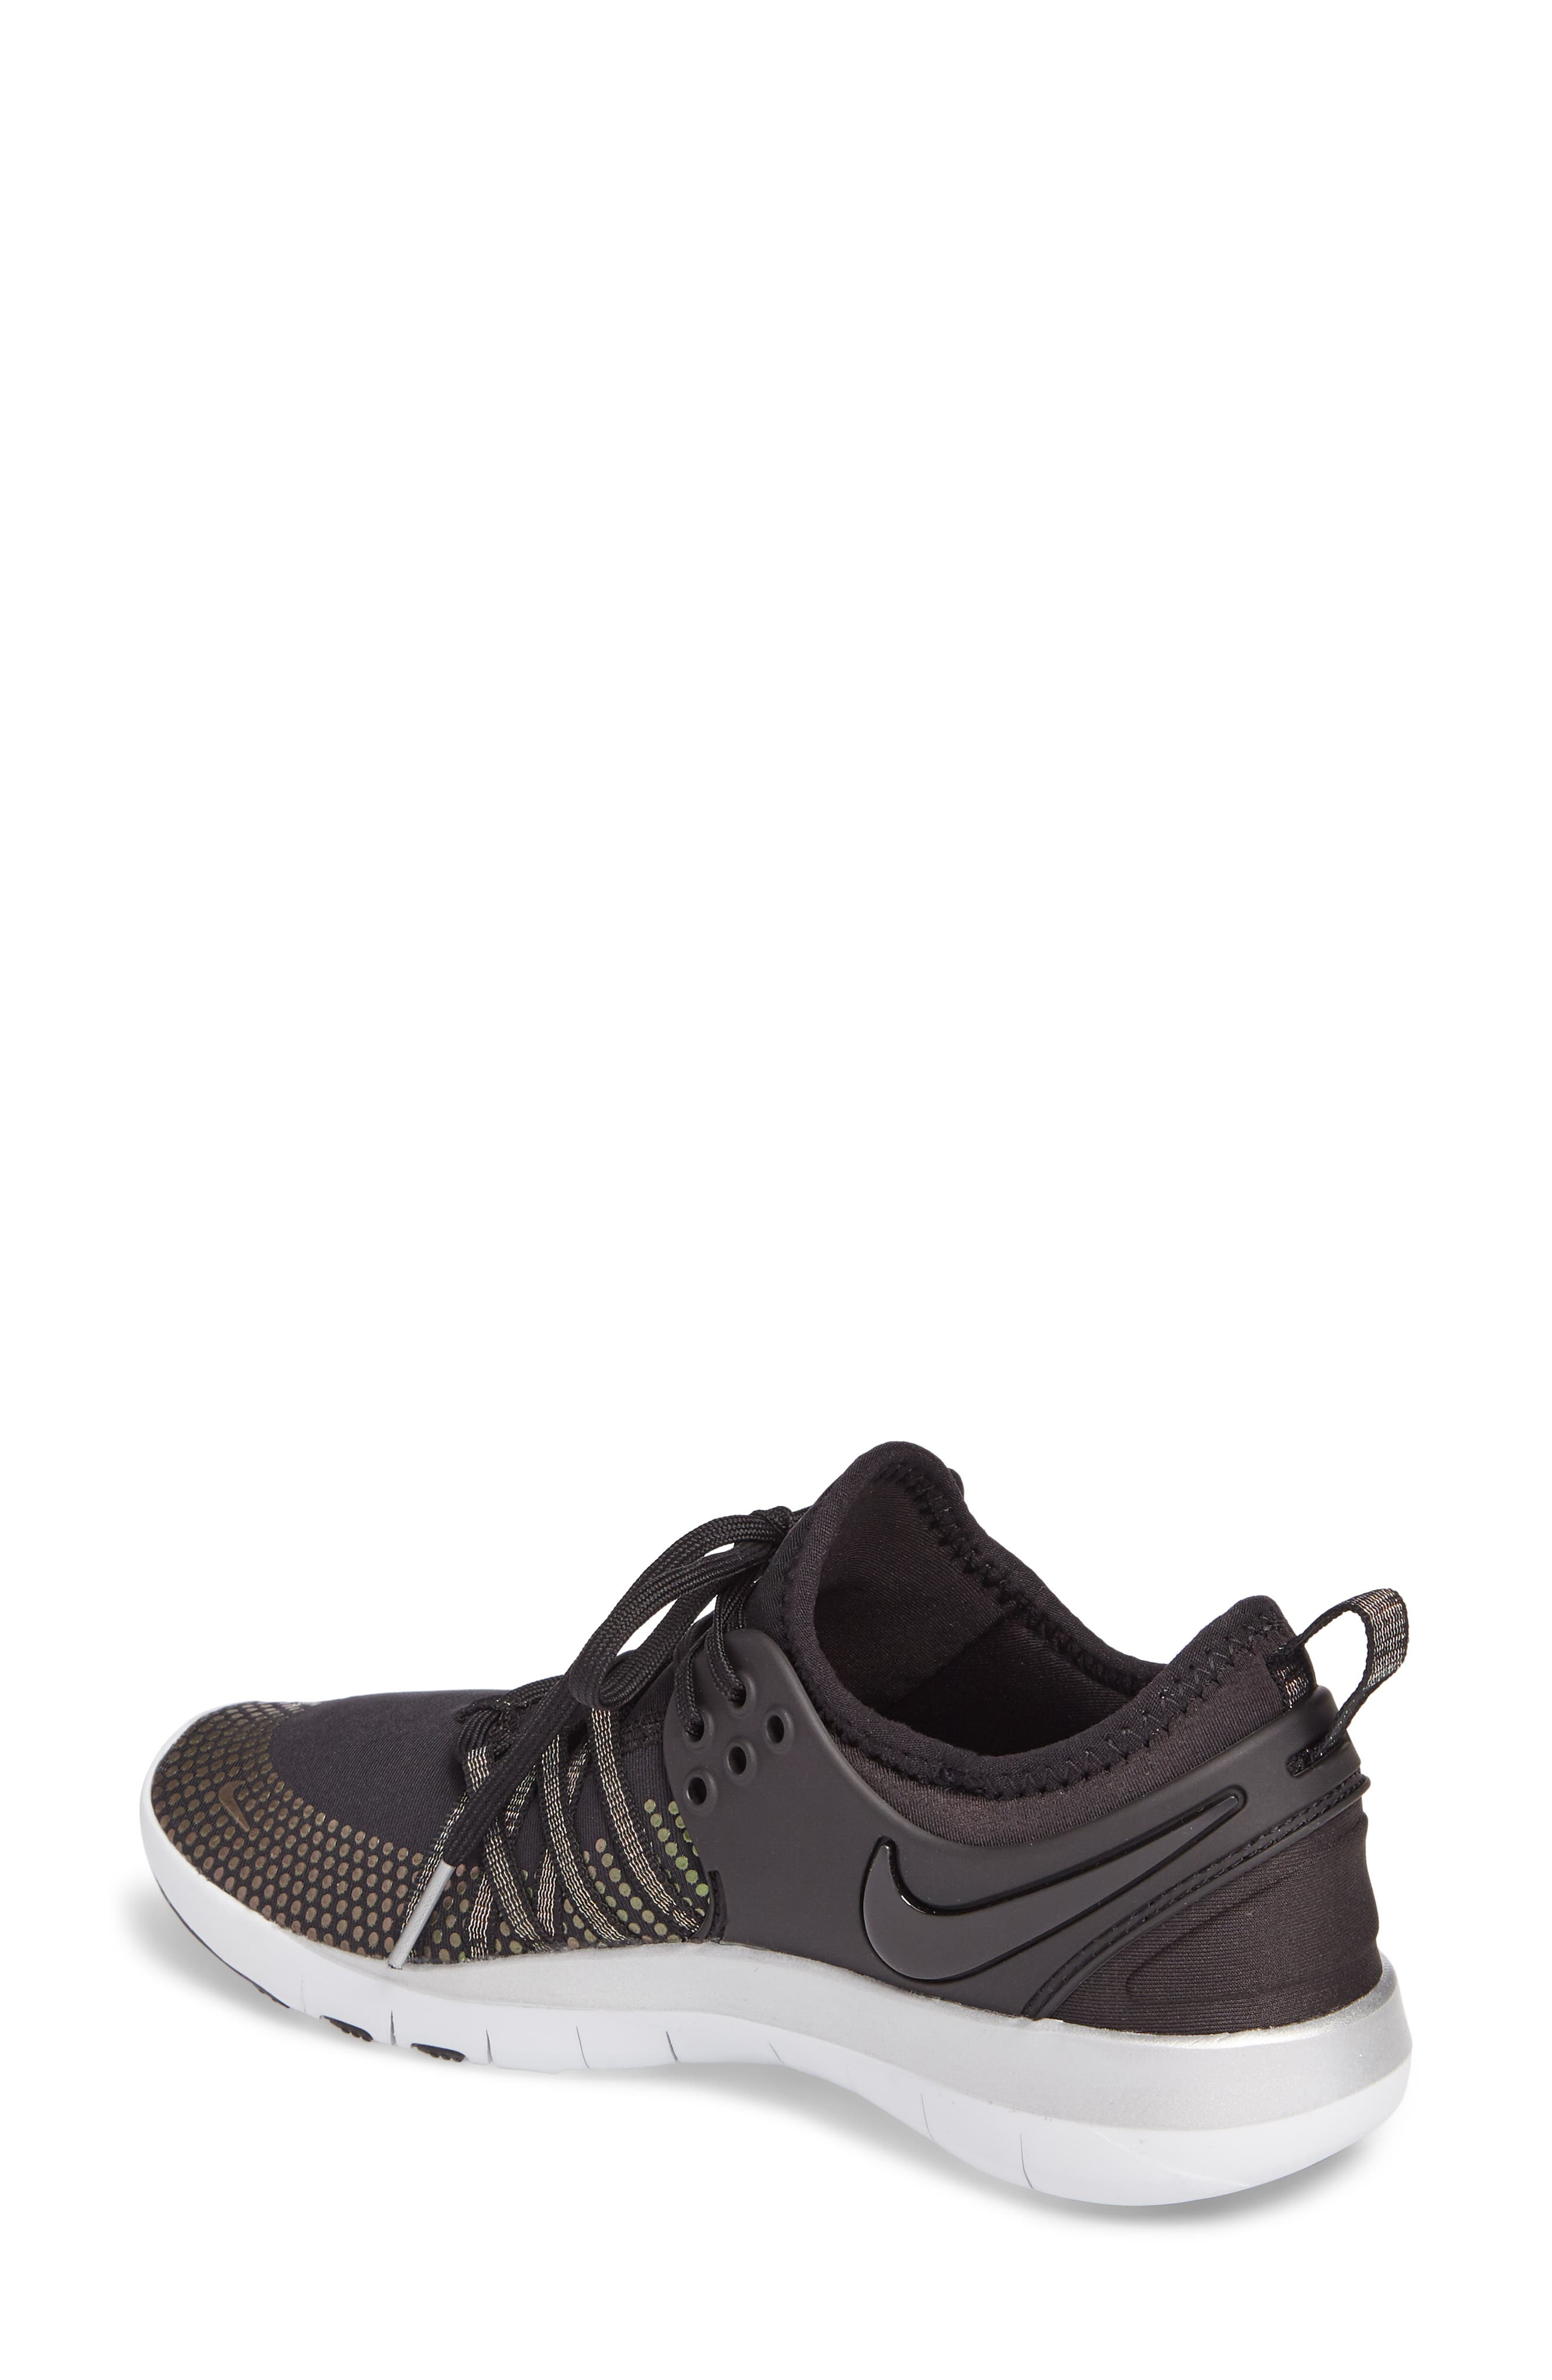 Alternate Image 2  - Nike Free TR 7 Metallic Training Shoe (Women)